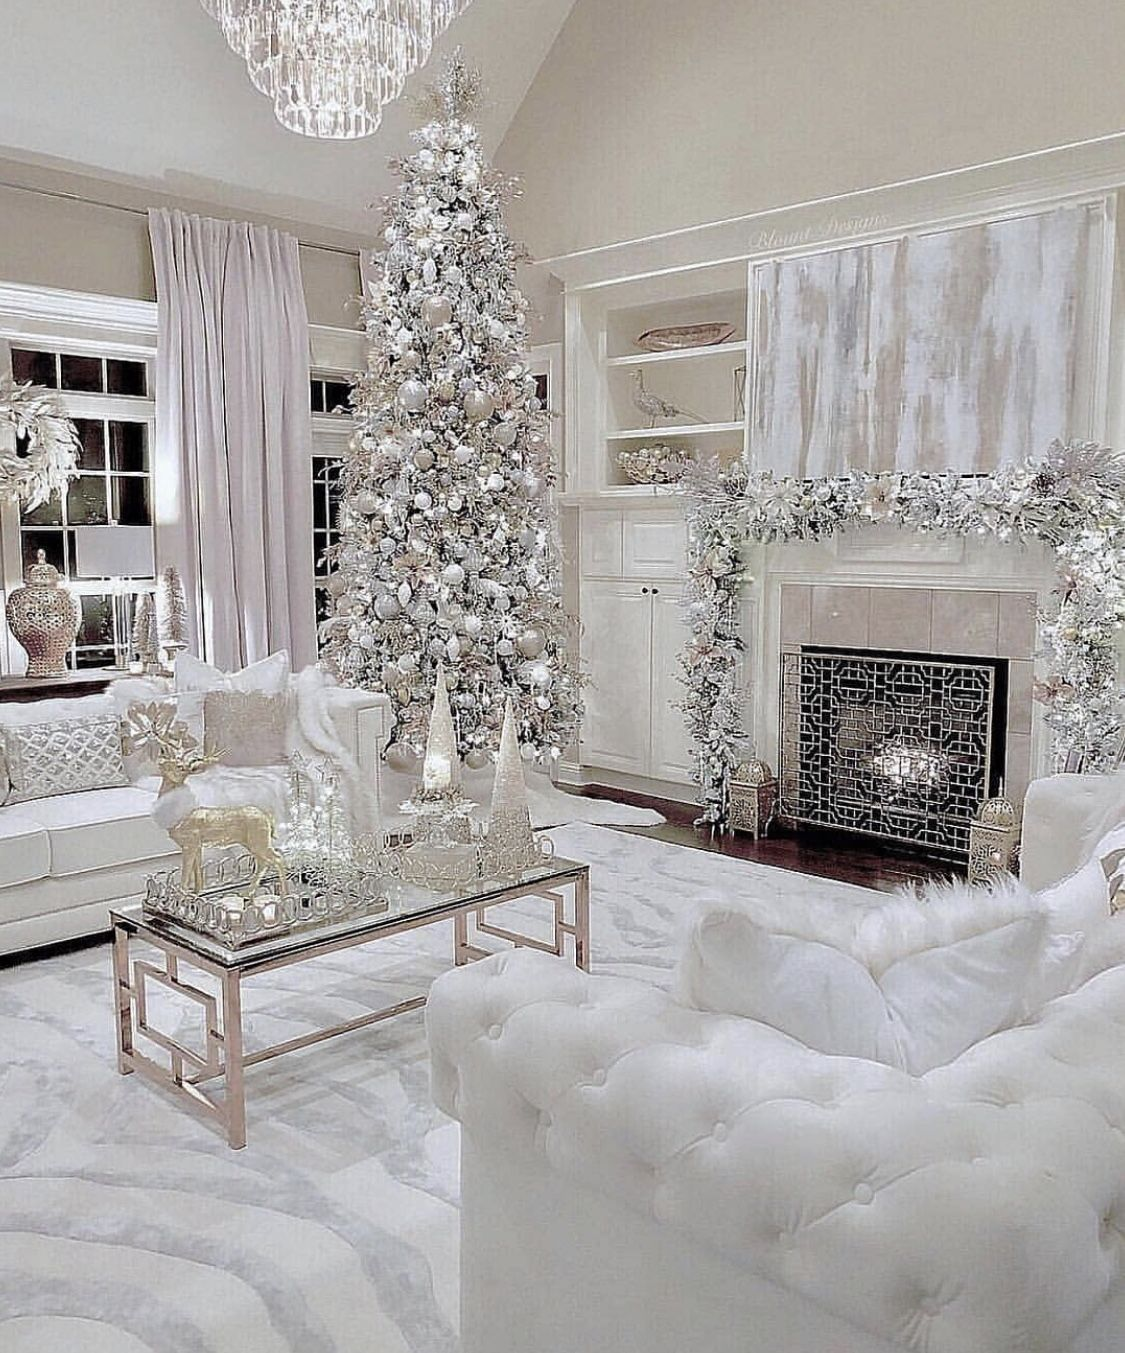 Elegant All White Christmas Living Room Decor With White Velvet Sofas White Christmas Decor Christmas Living Rooms Winter Home Decor #tree #decor #for #living #room